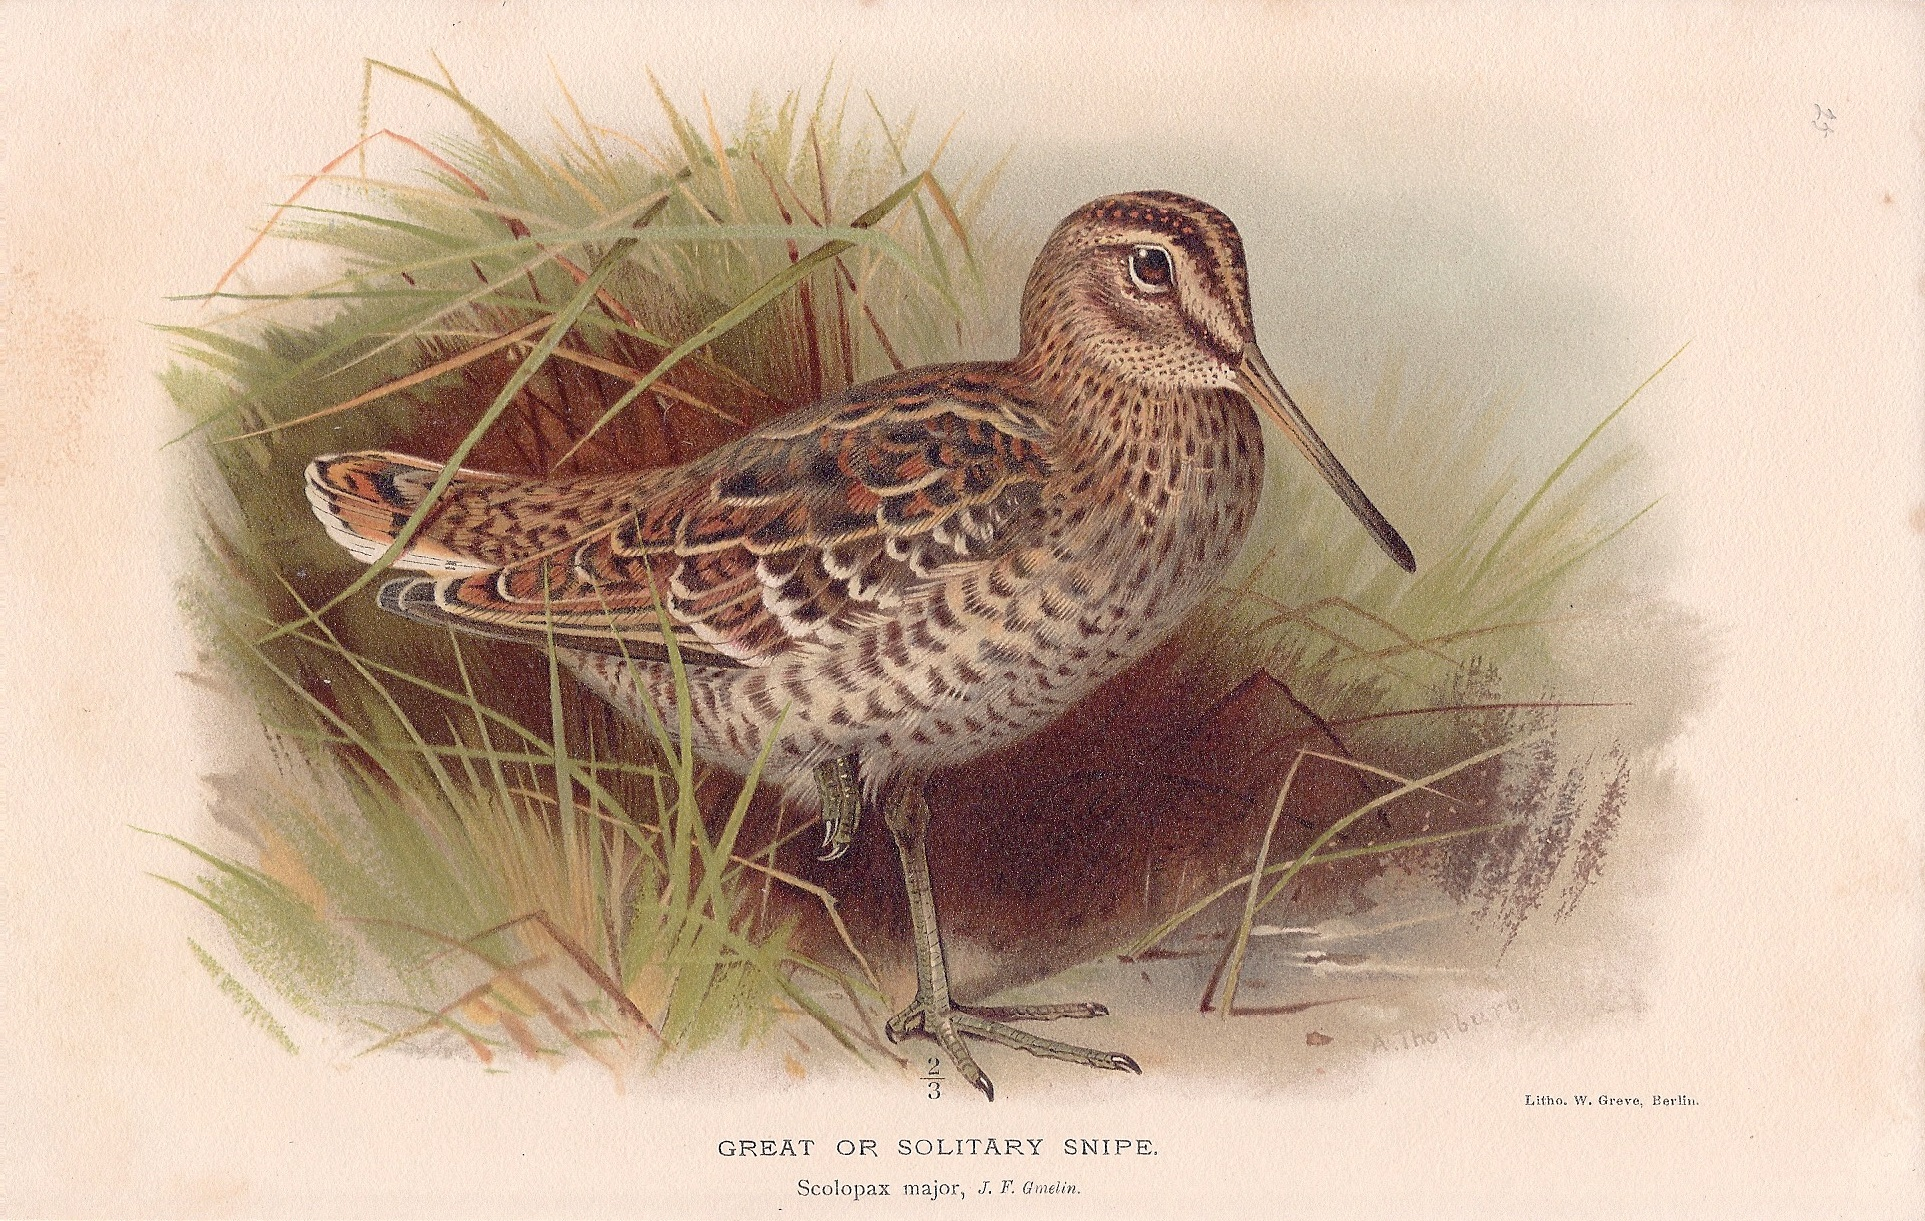 Great or Solitary Snipe